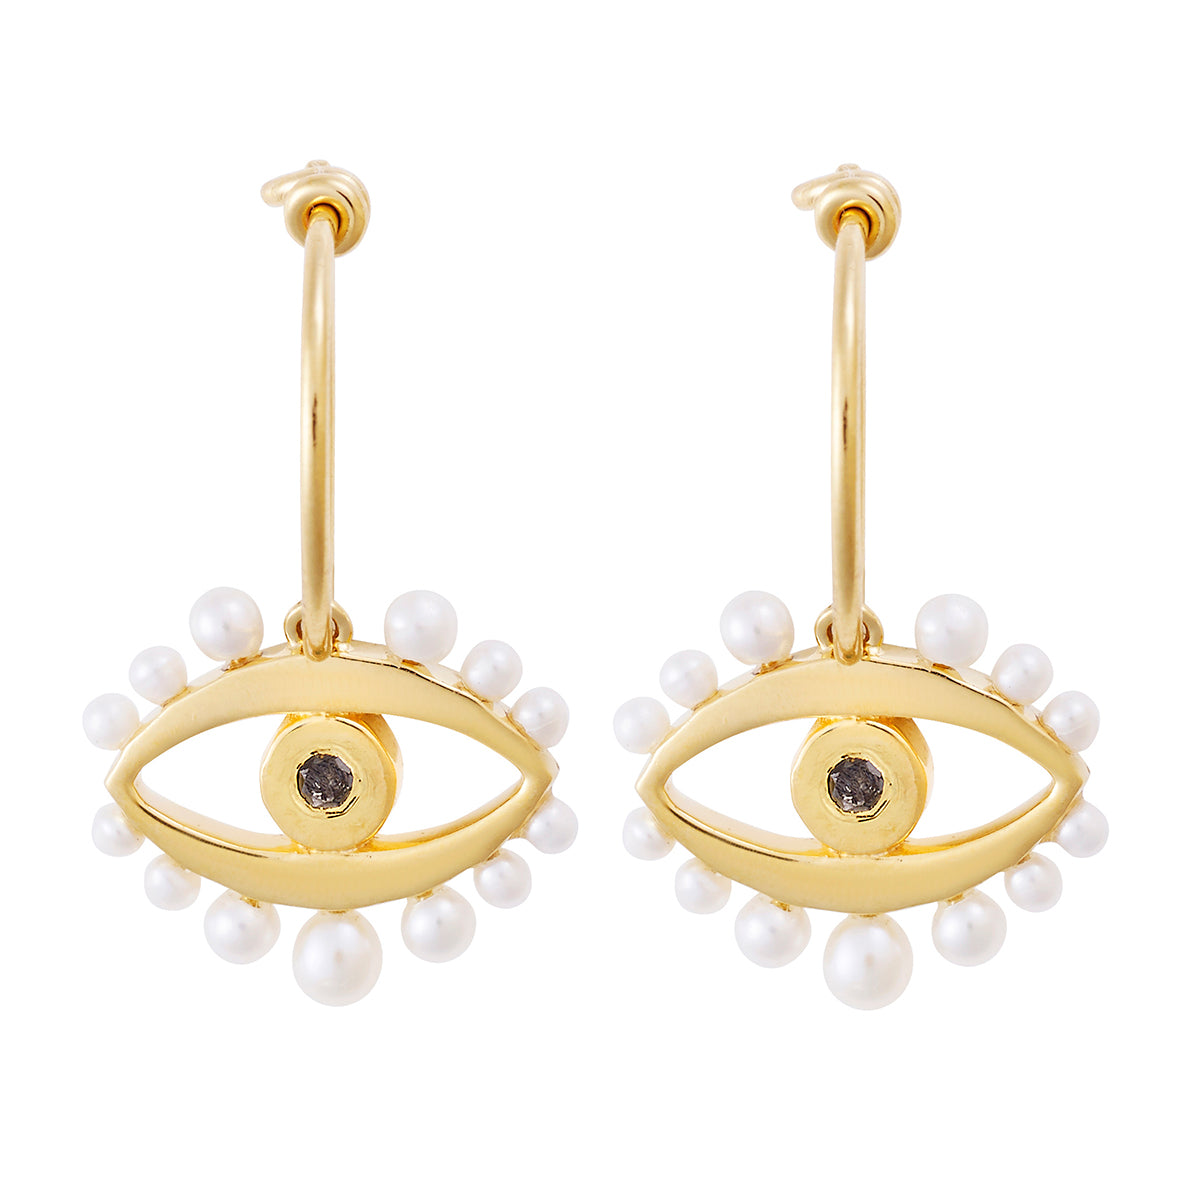 Mermaid's Eye Earrings Slv-Yp-Bd-Pearl